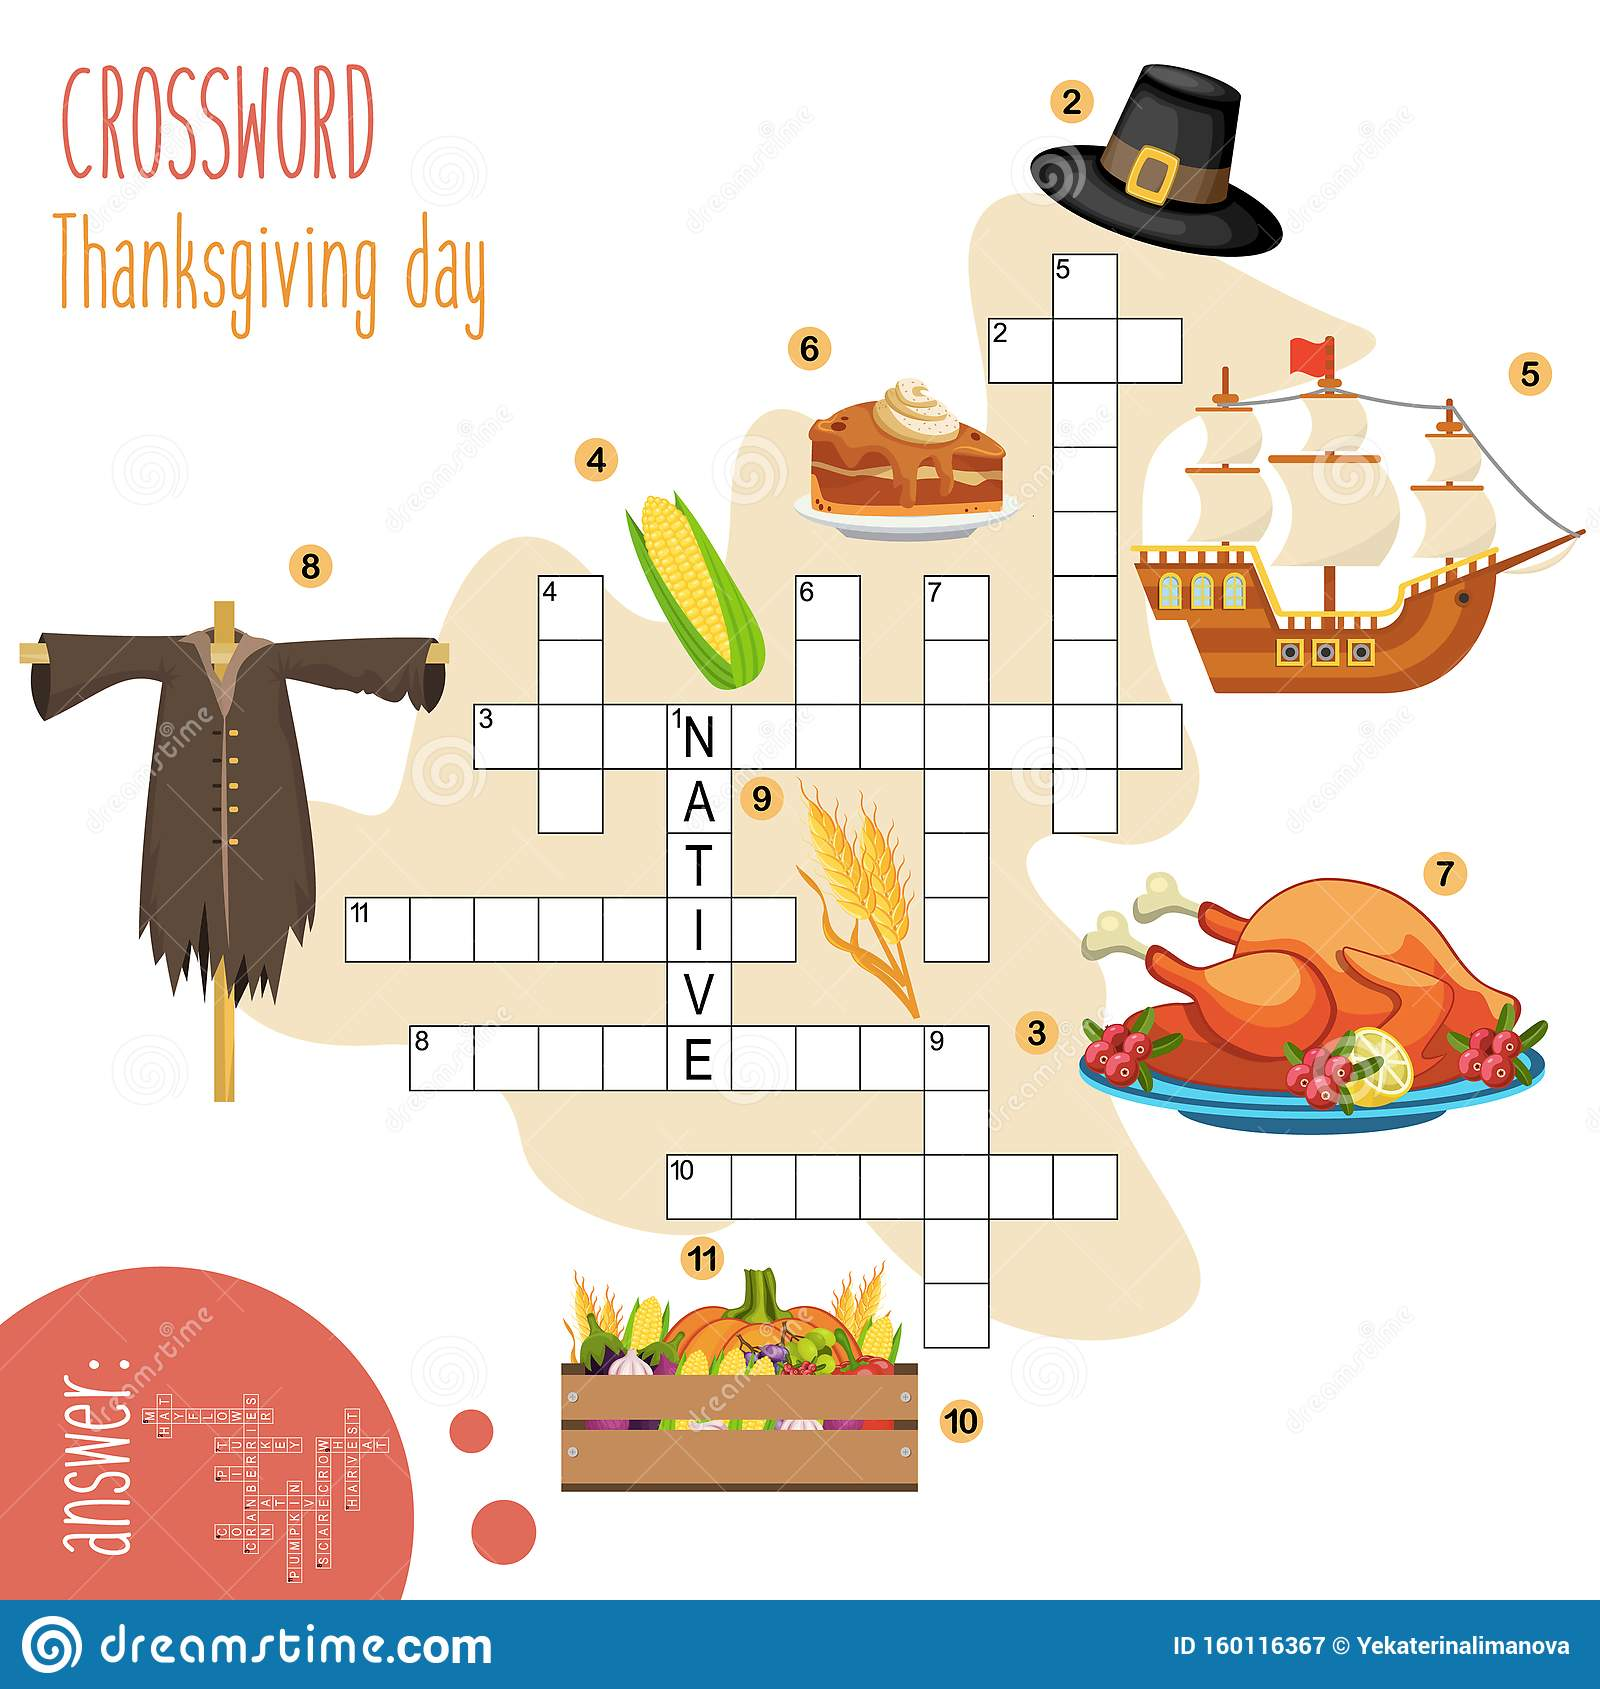 Easy Crossword Puzzle  Thanksgiving Day  Stock Vector